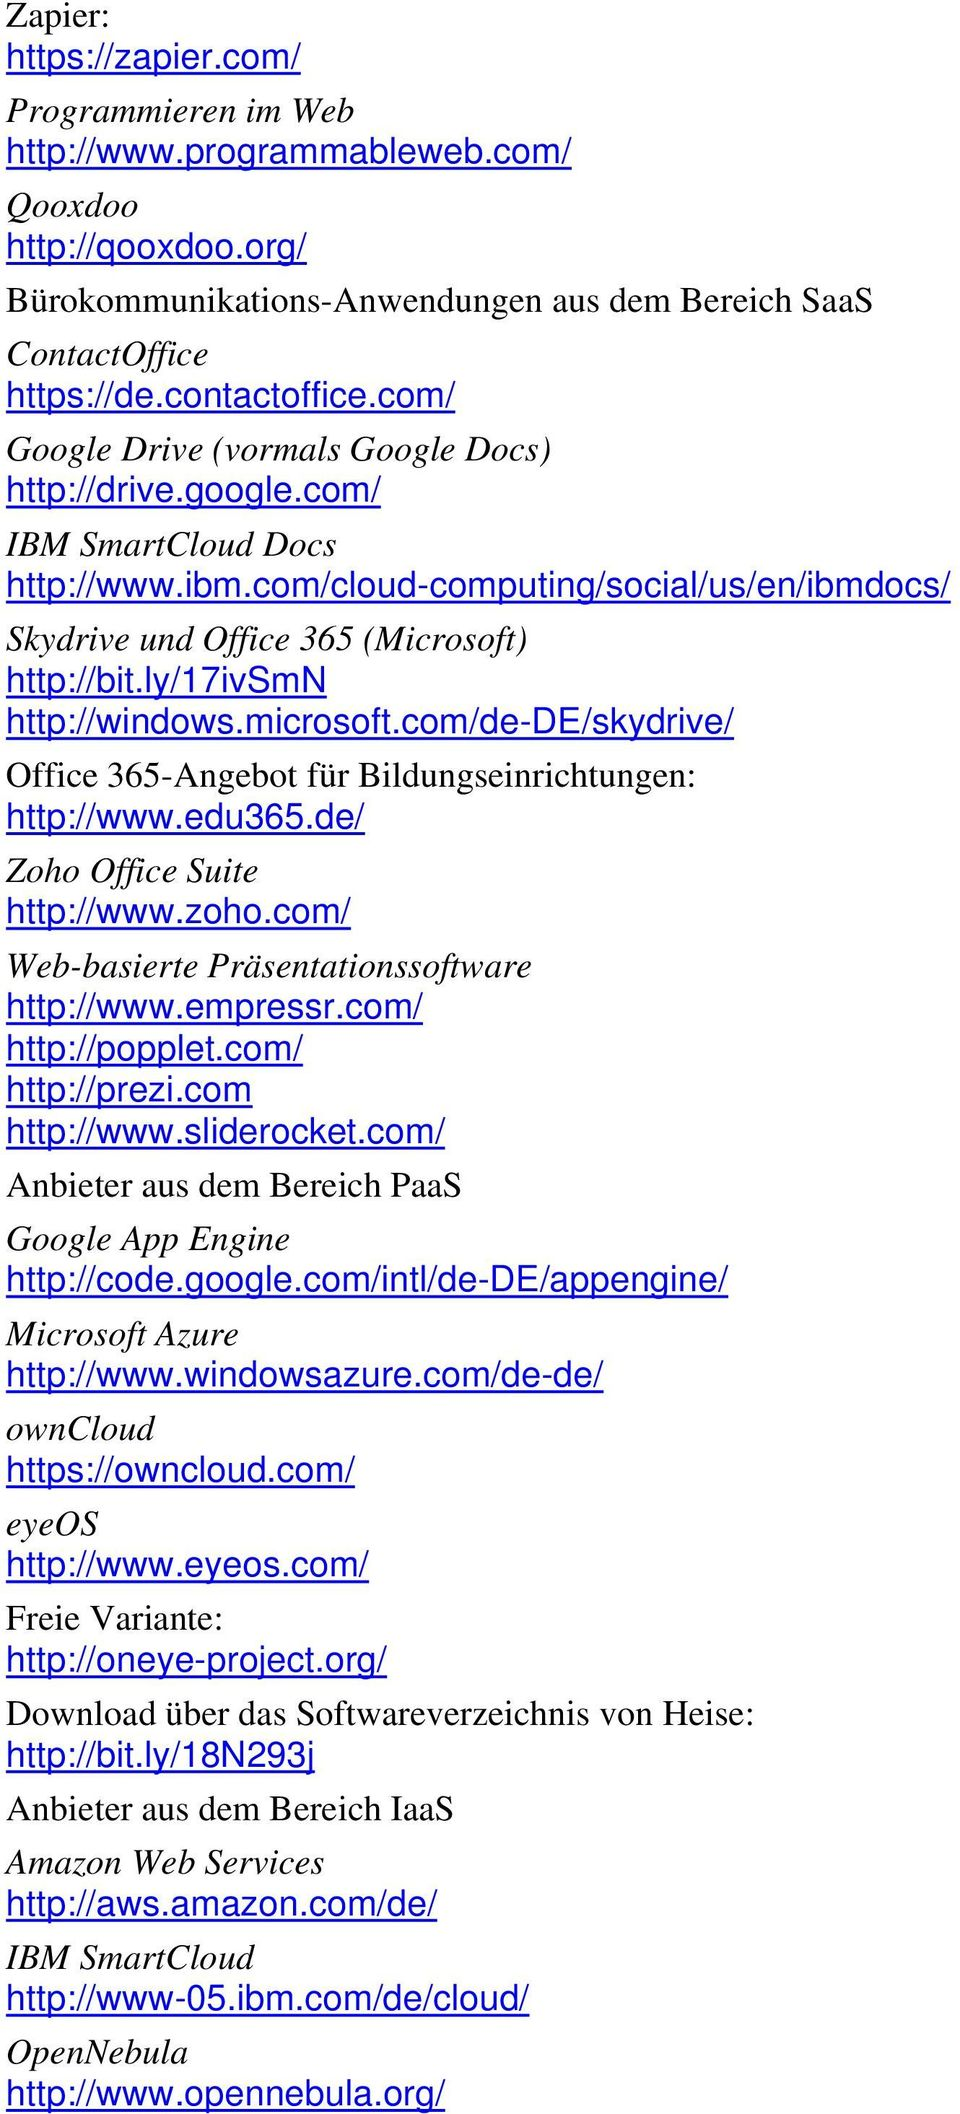 ly/17ivsmn http://windows.microsoft.com/de-de/skydrive/ Office 365-Angebot für Bildungseinrichtungen: http://www.edu365.de/ Zoho Office Suite http://www.zoho.